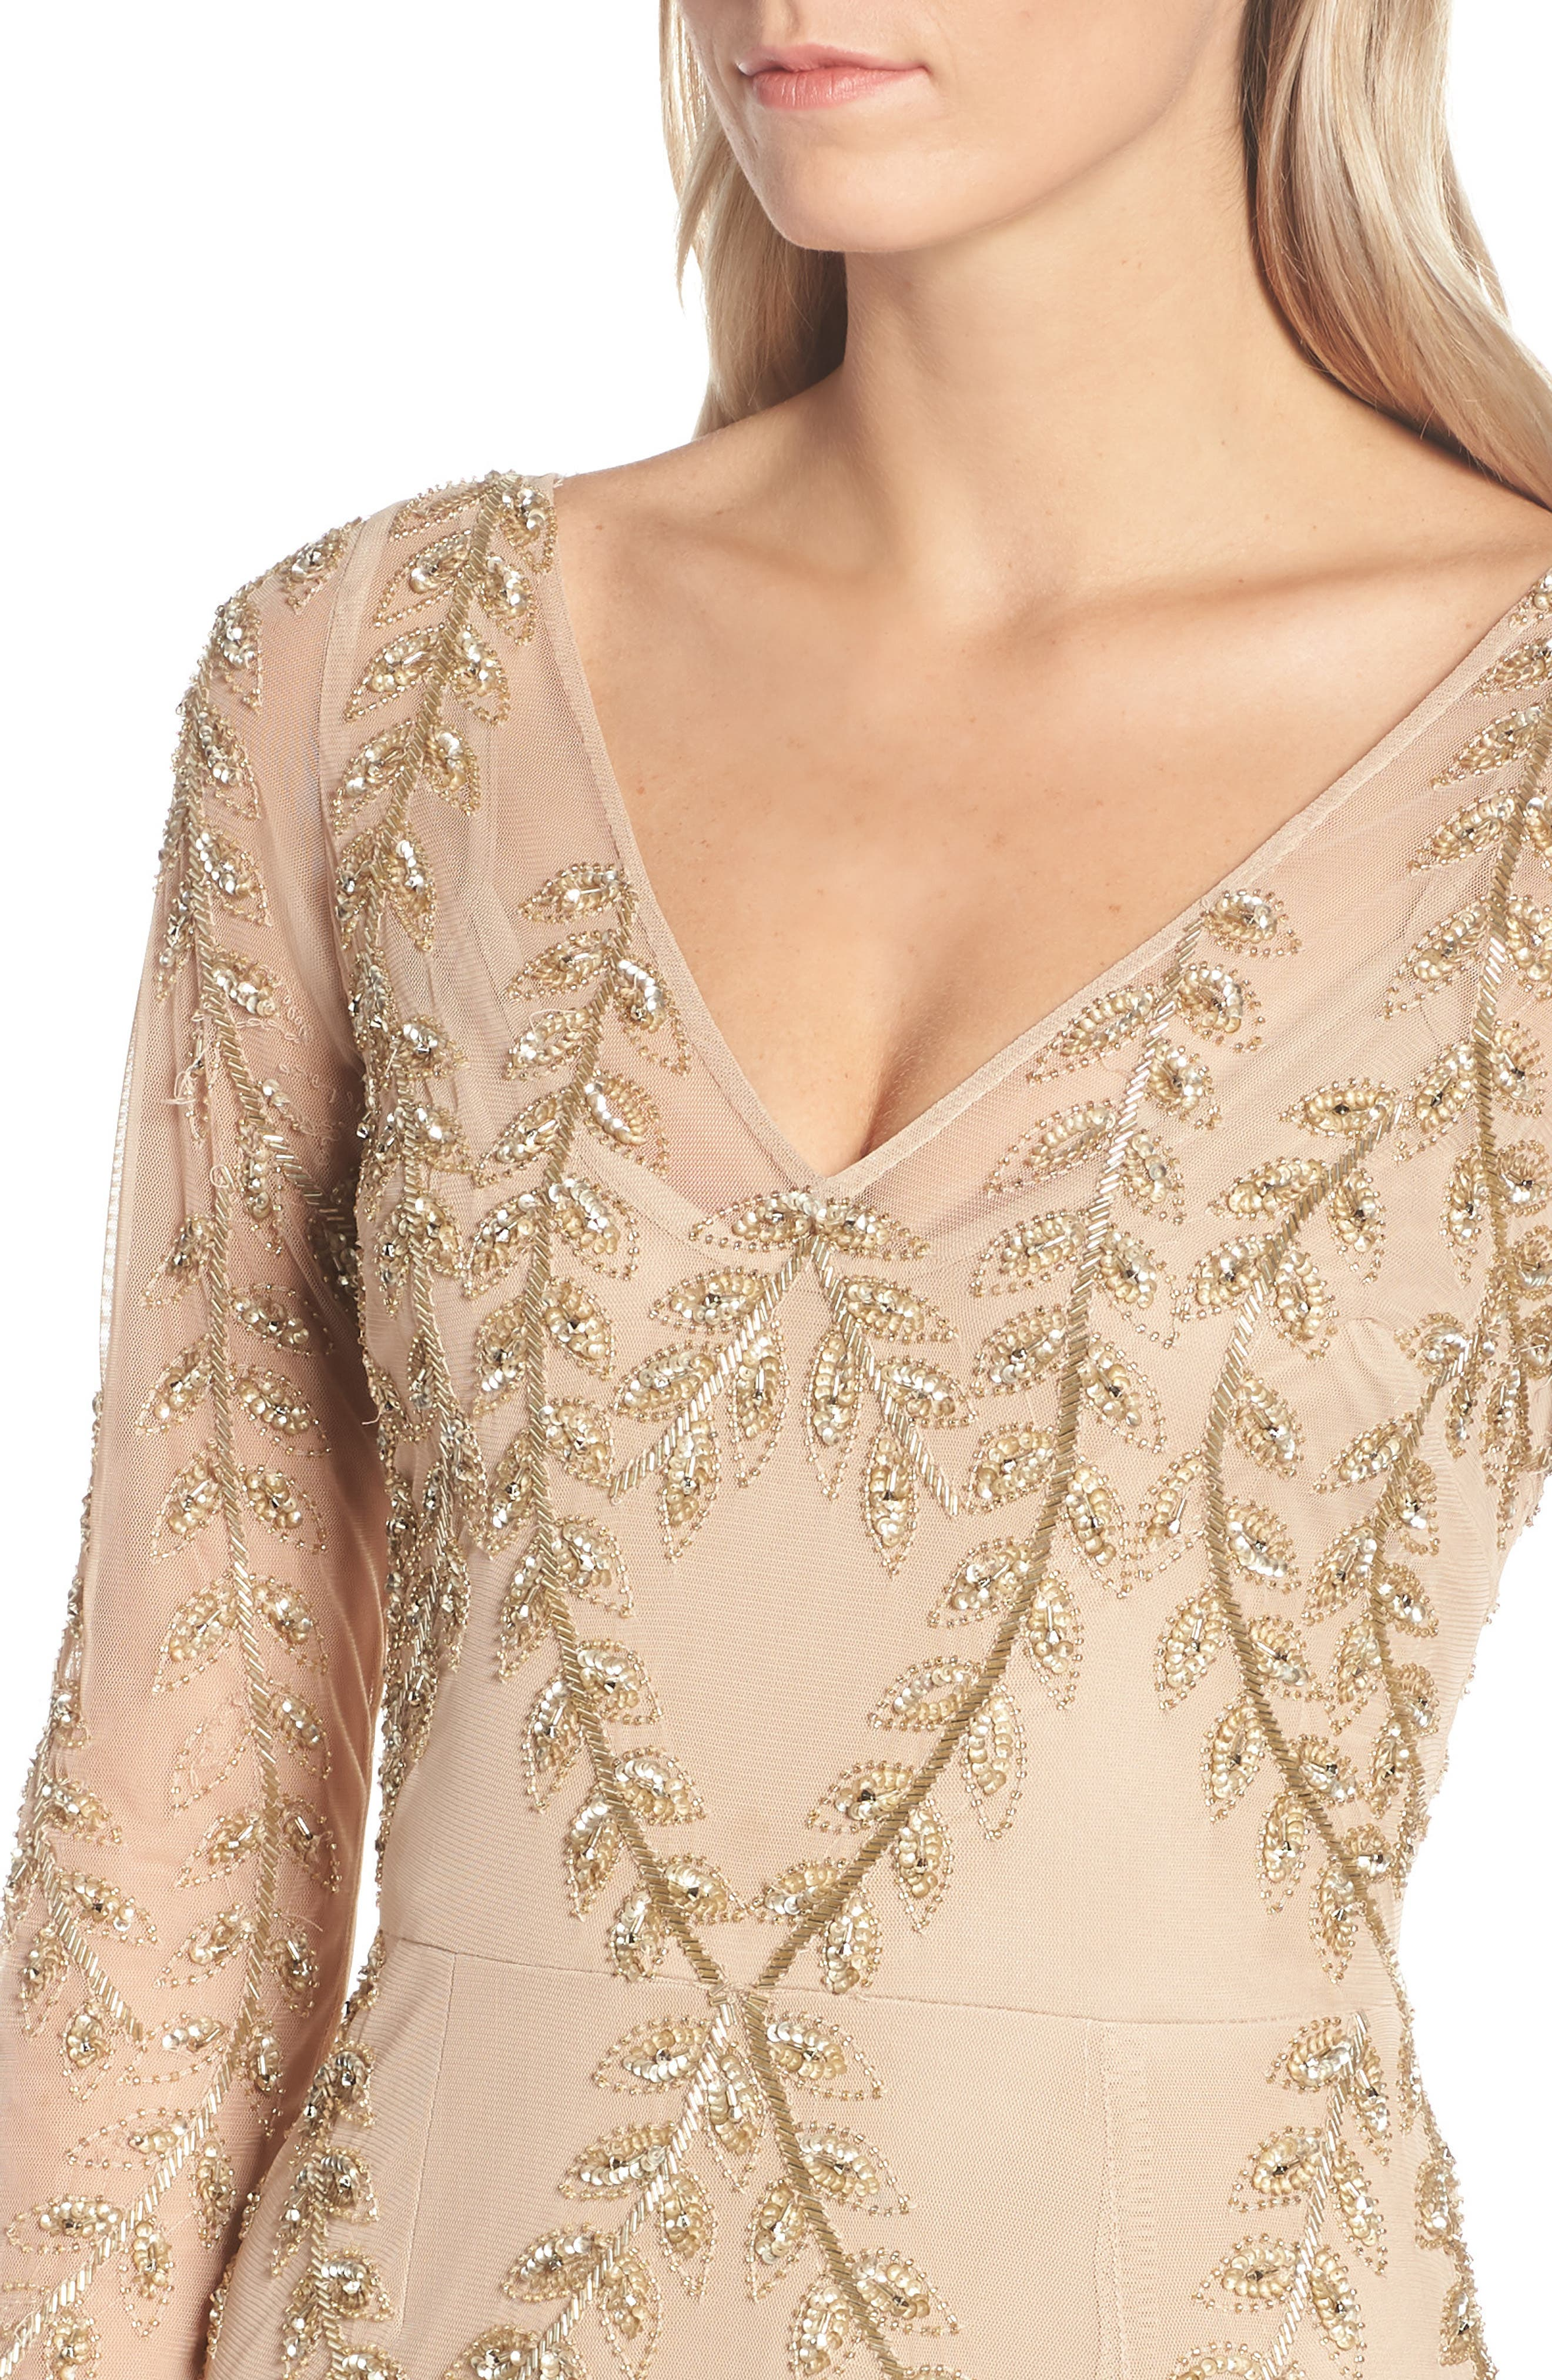 ADRIANNA PAPELL,                             Fern Beaded Gown,                             Alternate thumbnail 5, color,                             CHAMPAGNE/ GOLD